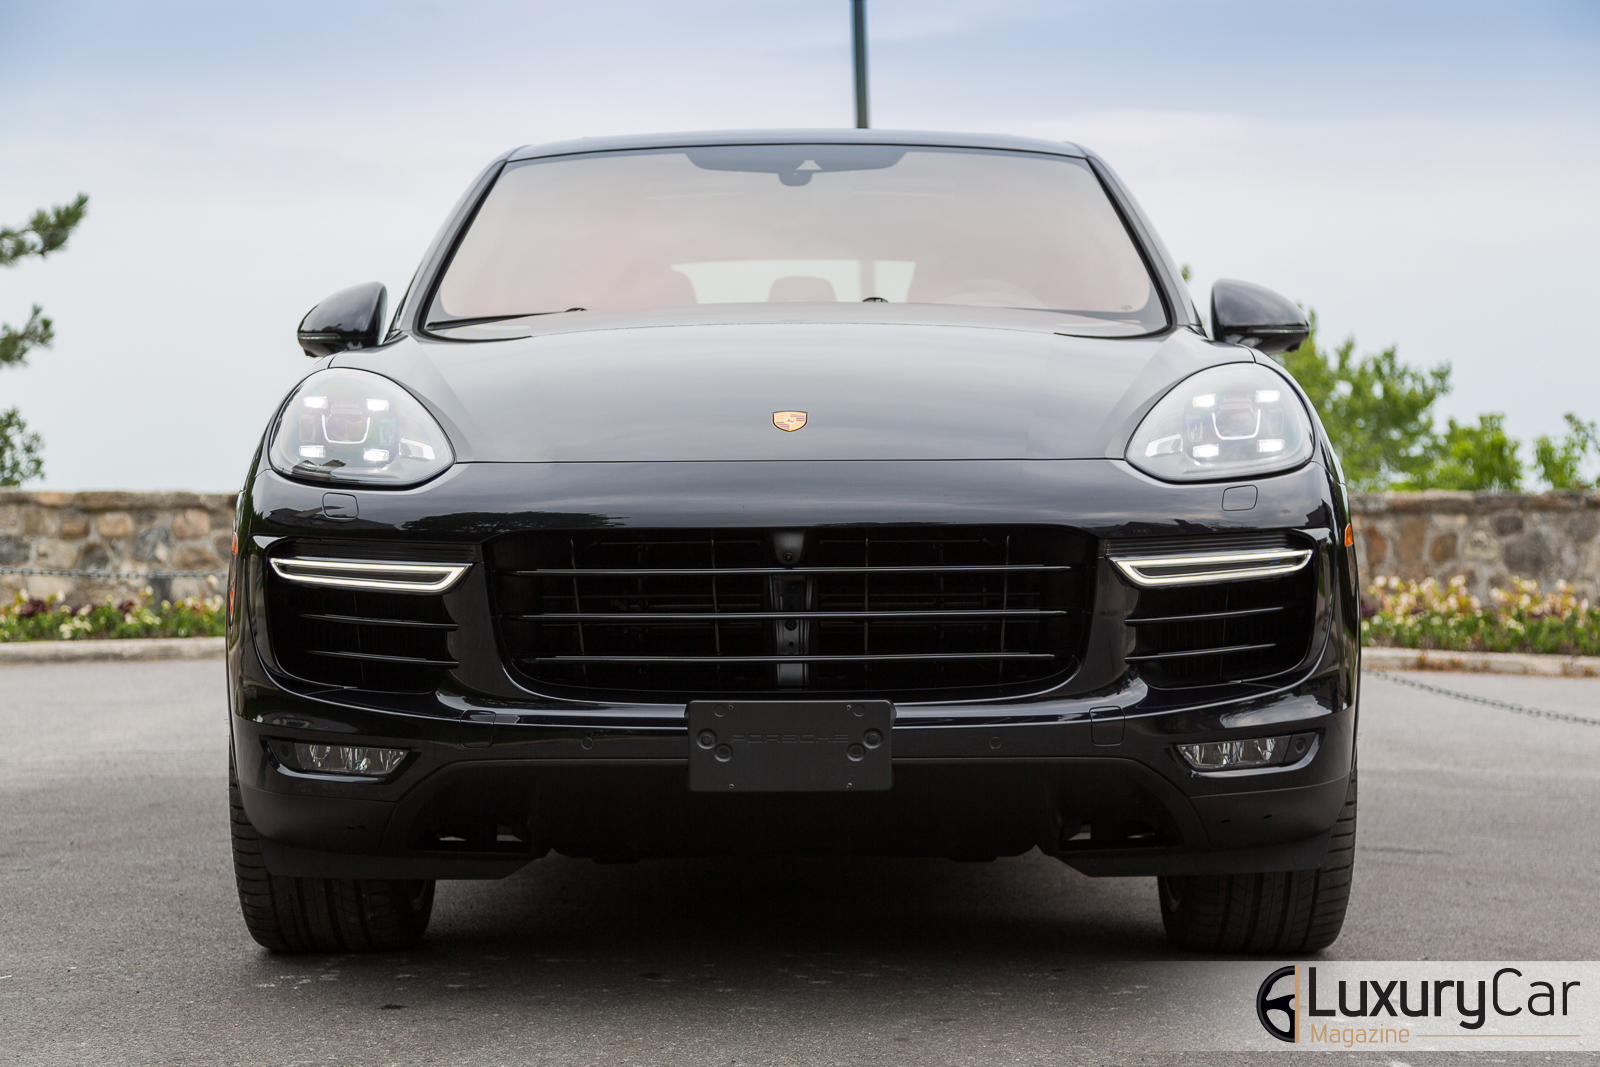 essai routier porsche cayenne turbo s 2015. Black Bedroom Furniture Sets. Home Design Ideas